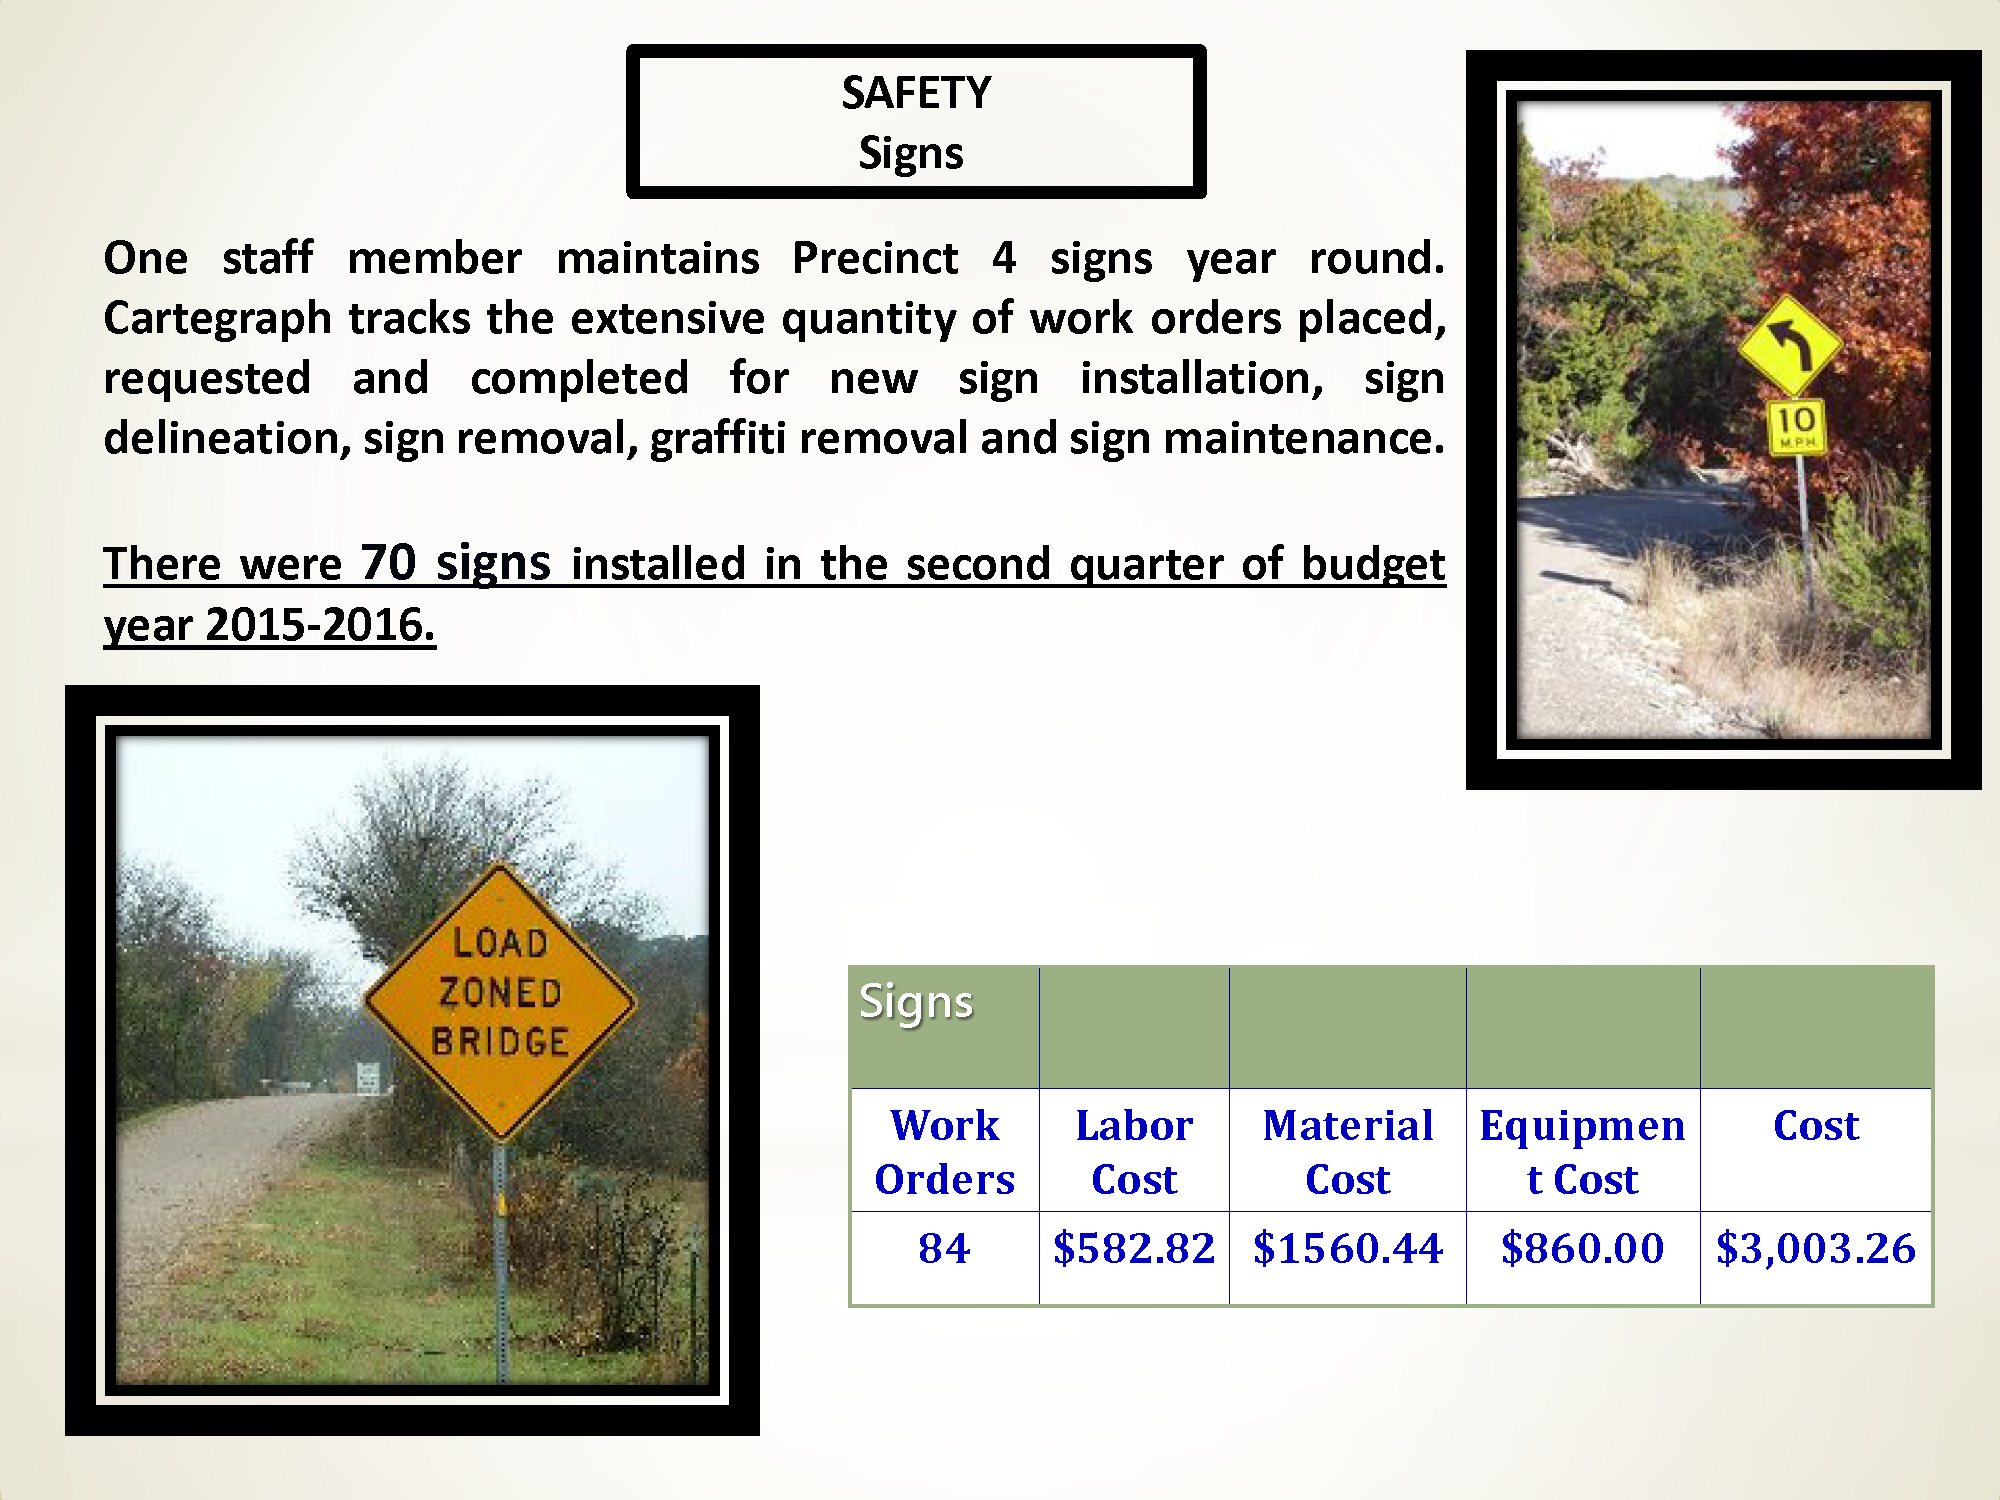 Safety Sign Information and Pictures